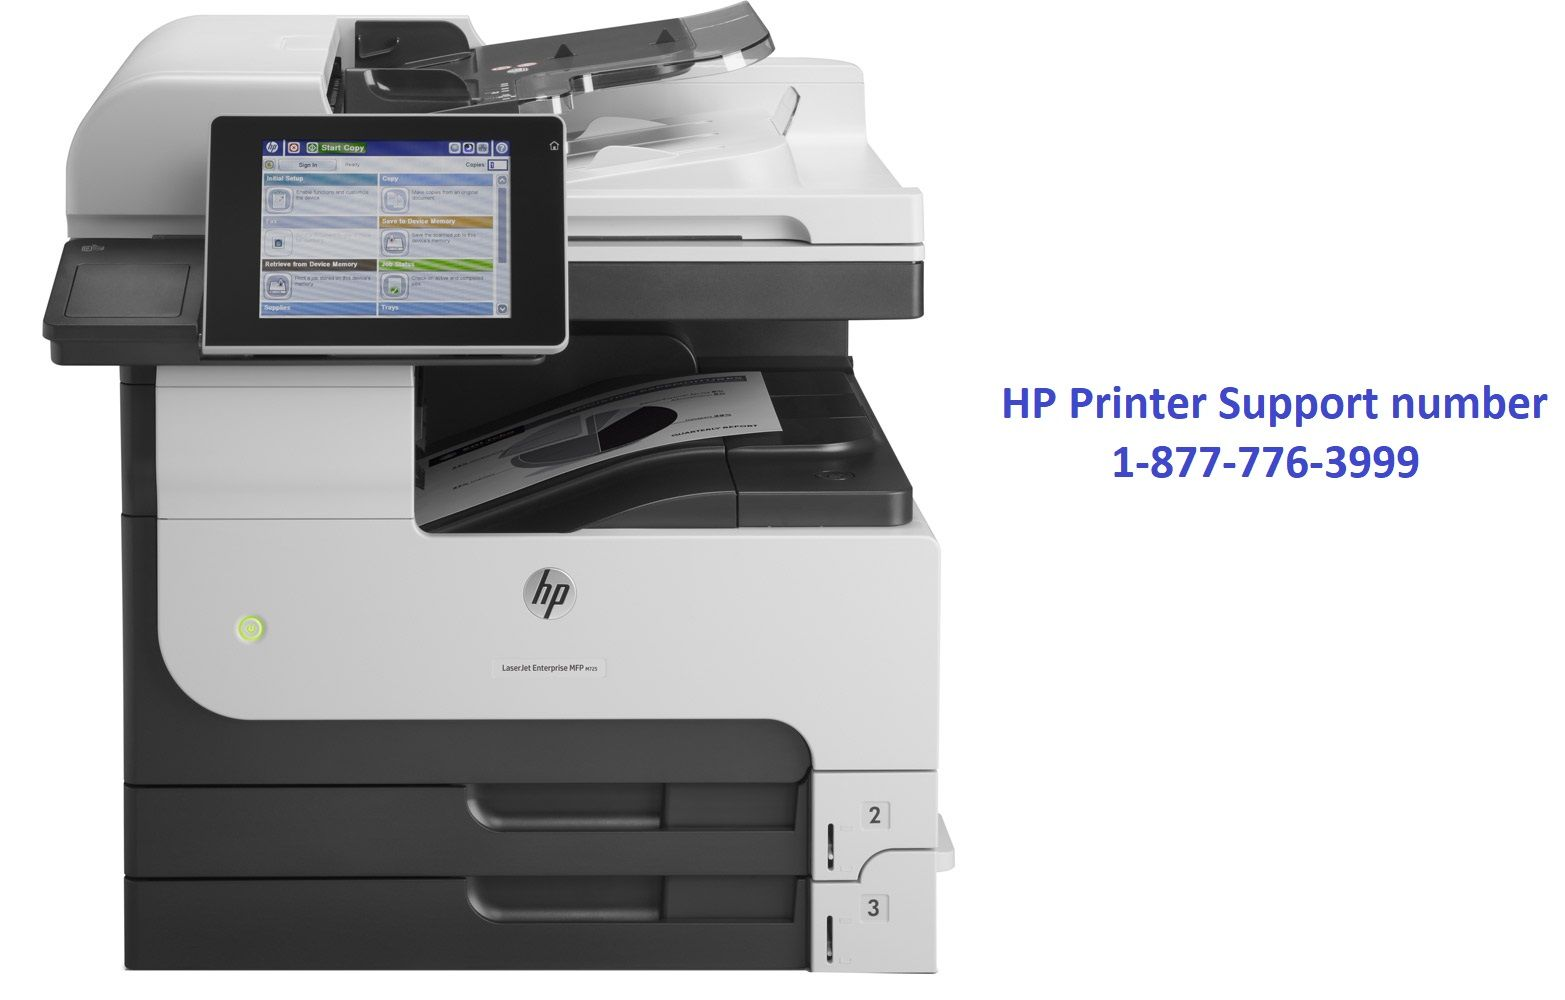 Hp Printer Technical Support 1 877 776 3999 Hp Printer Brother